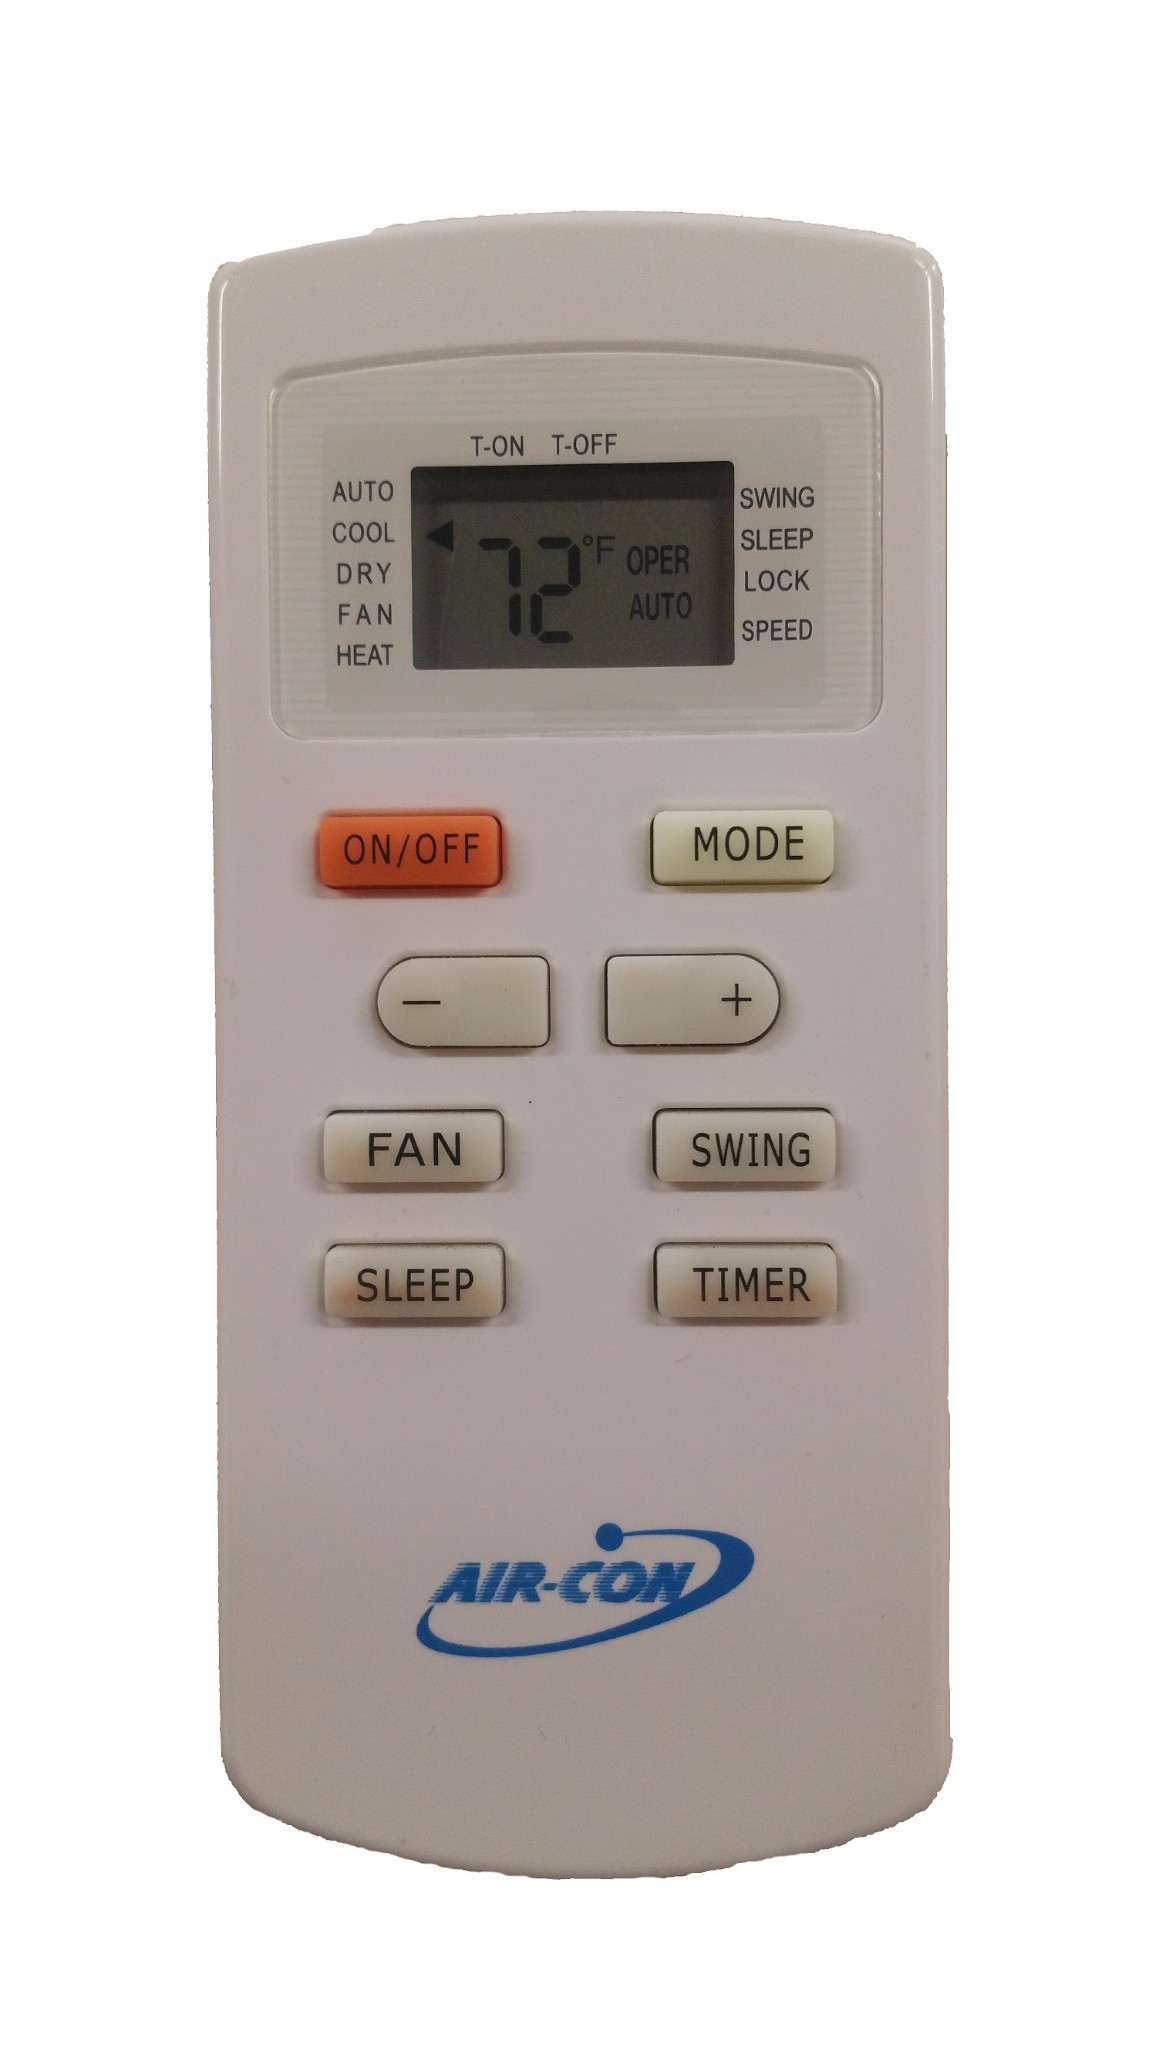 Aircon Mini Split Original Remote Control